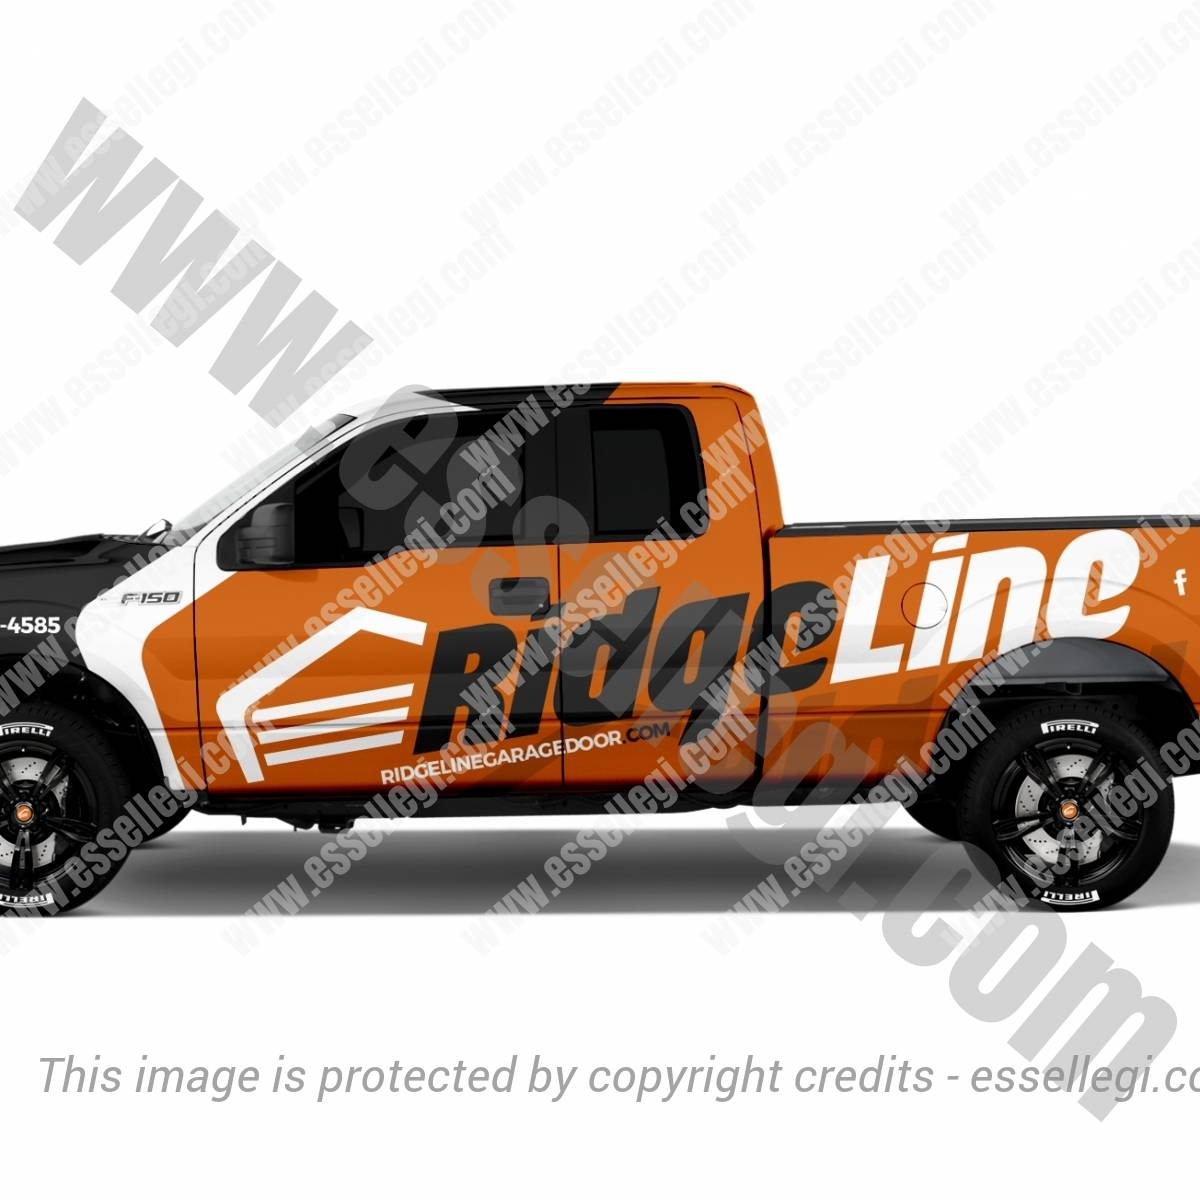 RIDGELINE GARAGE DOOR | TRUCK WRAP DESIGN 🇺🇸